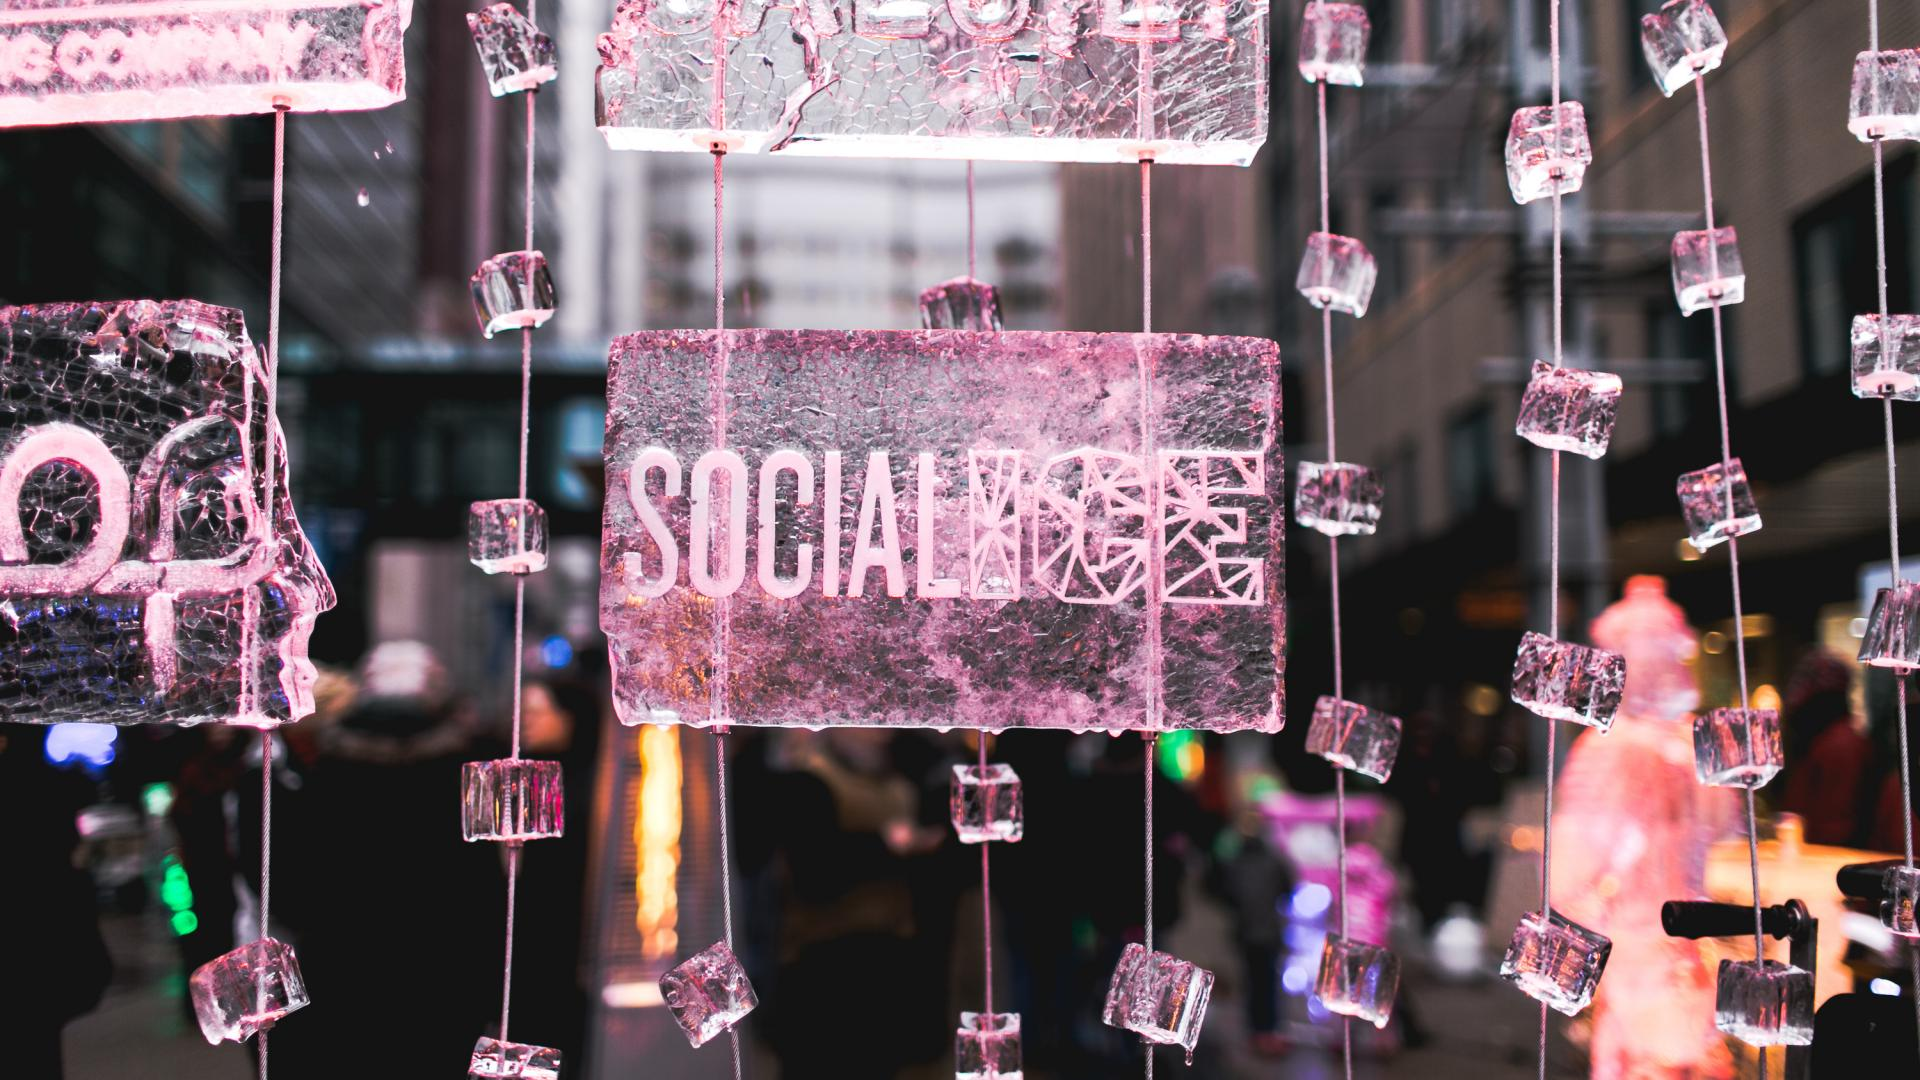 SocialICE ice sculpture